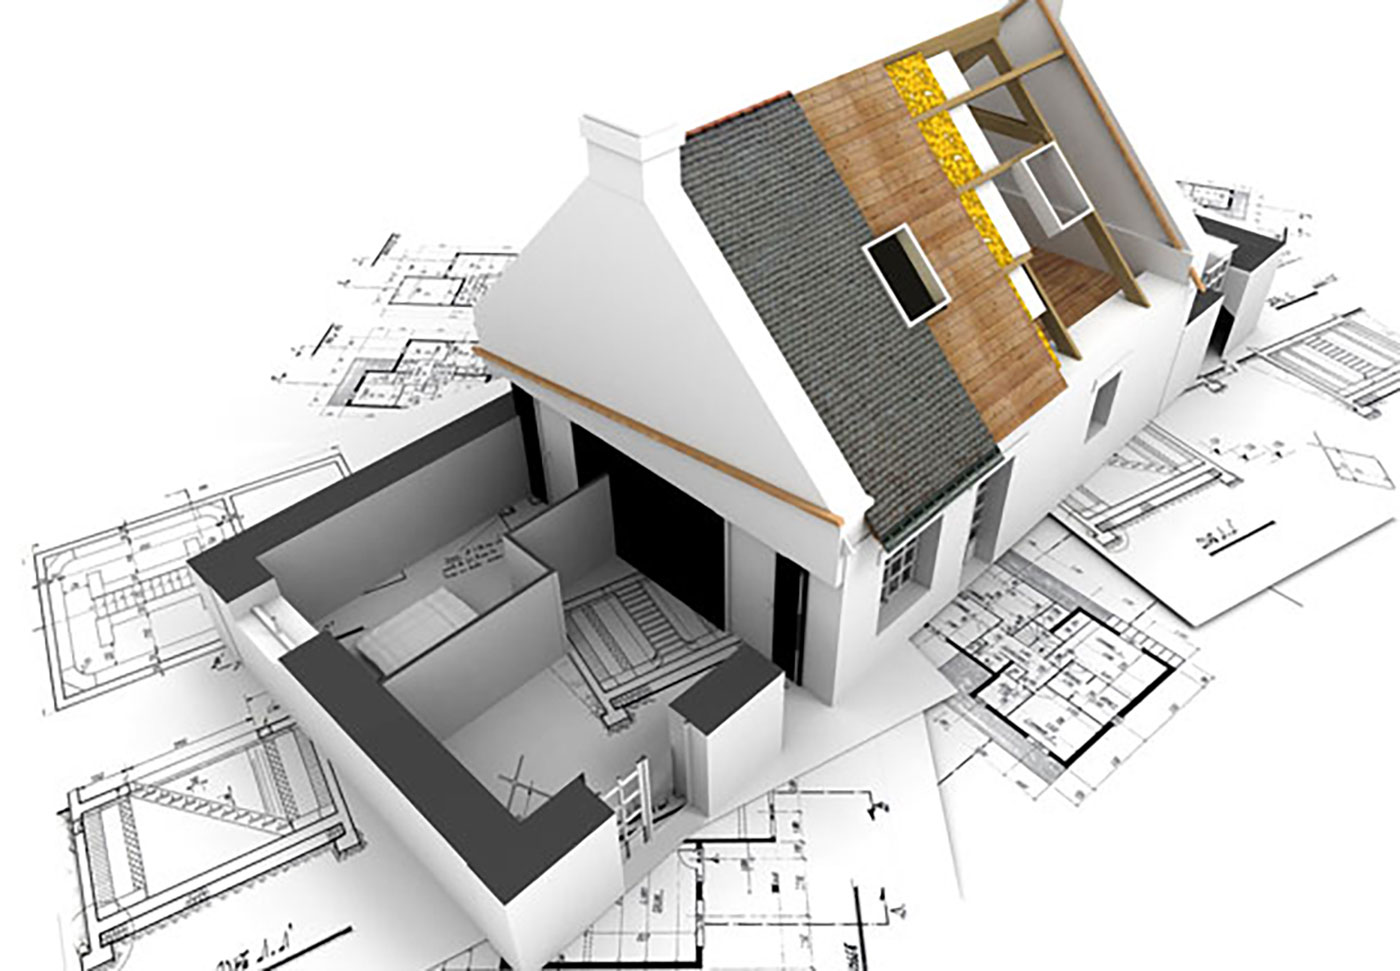 3D image of house under construction and blueprints